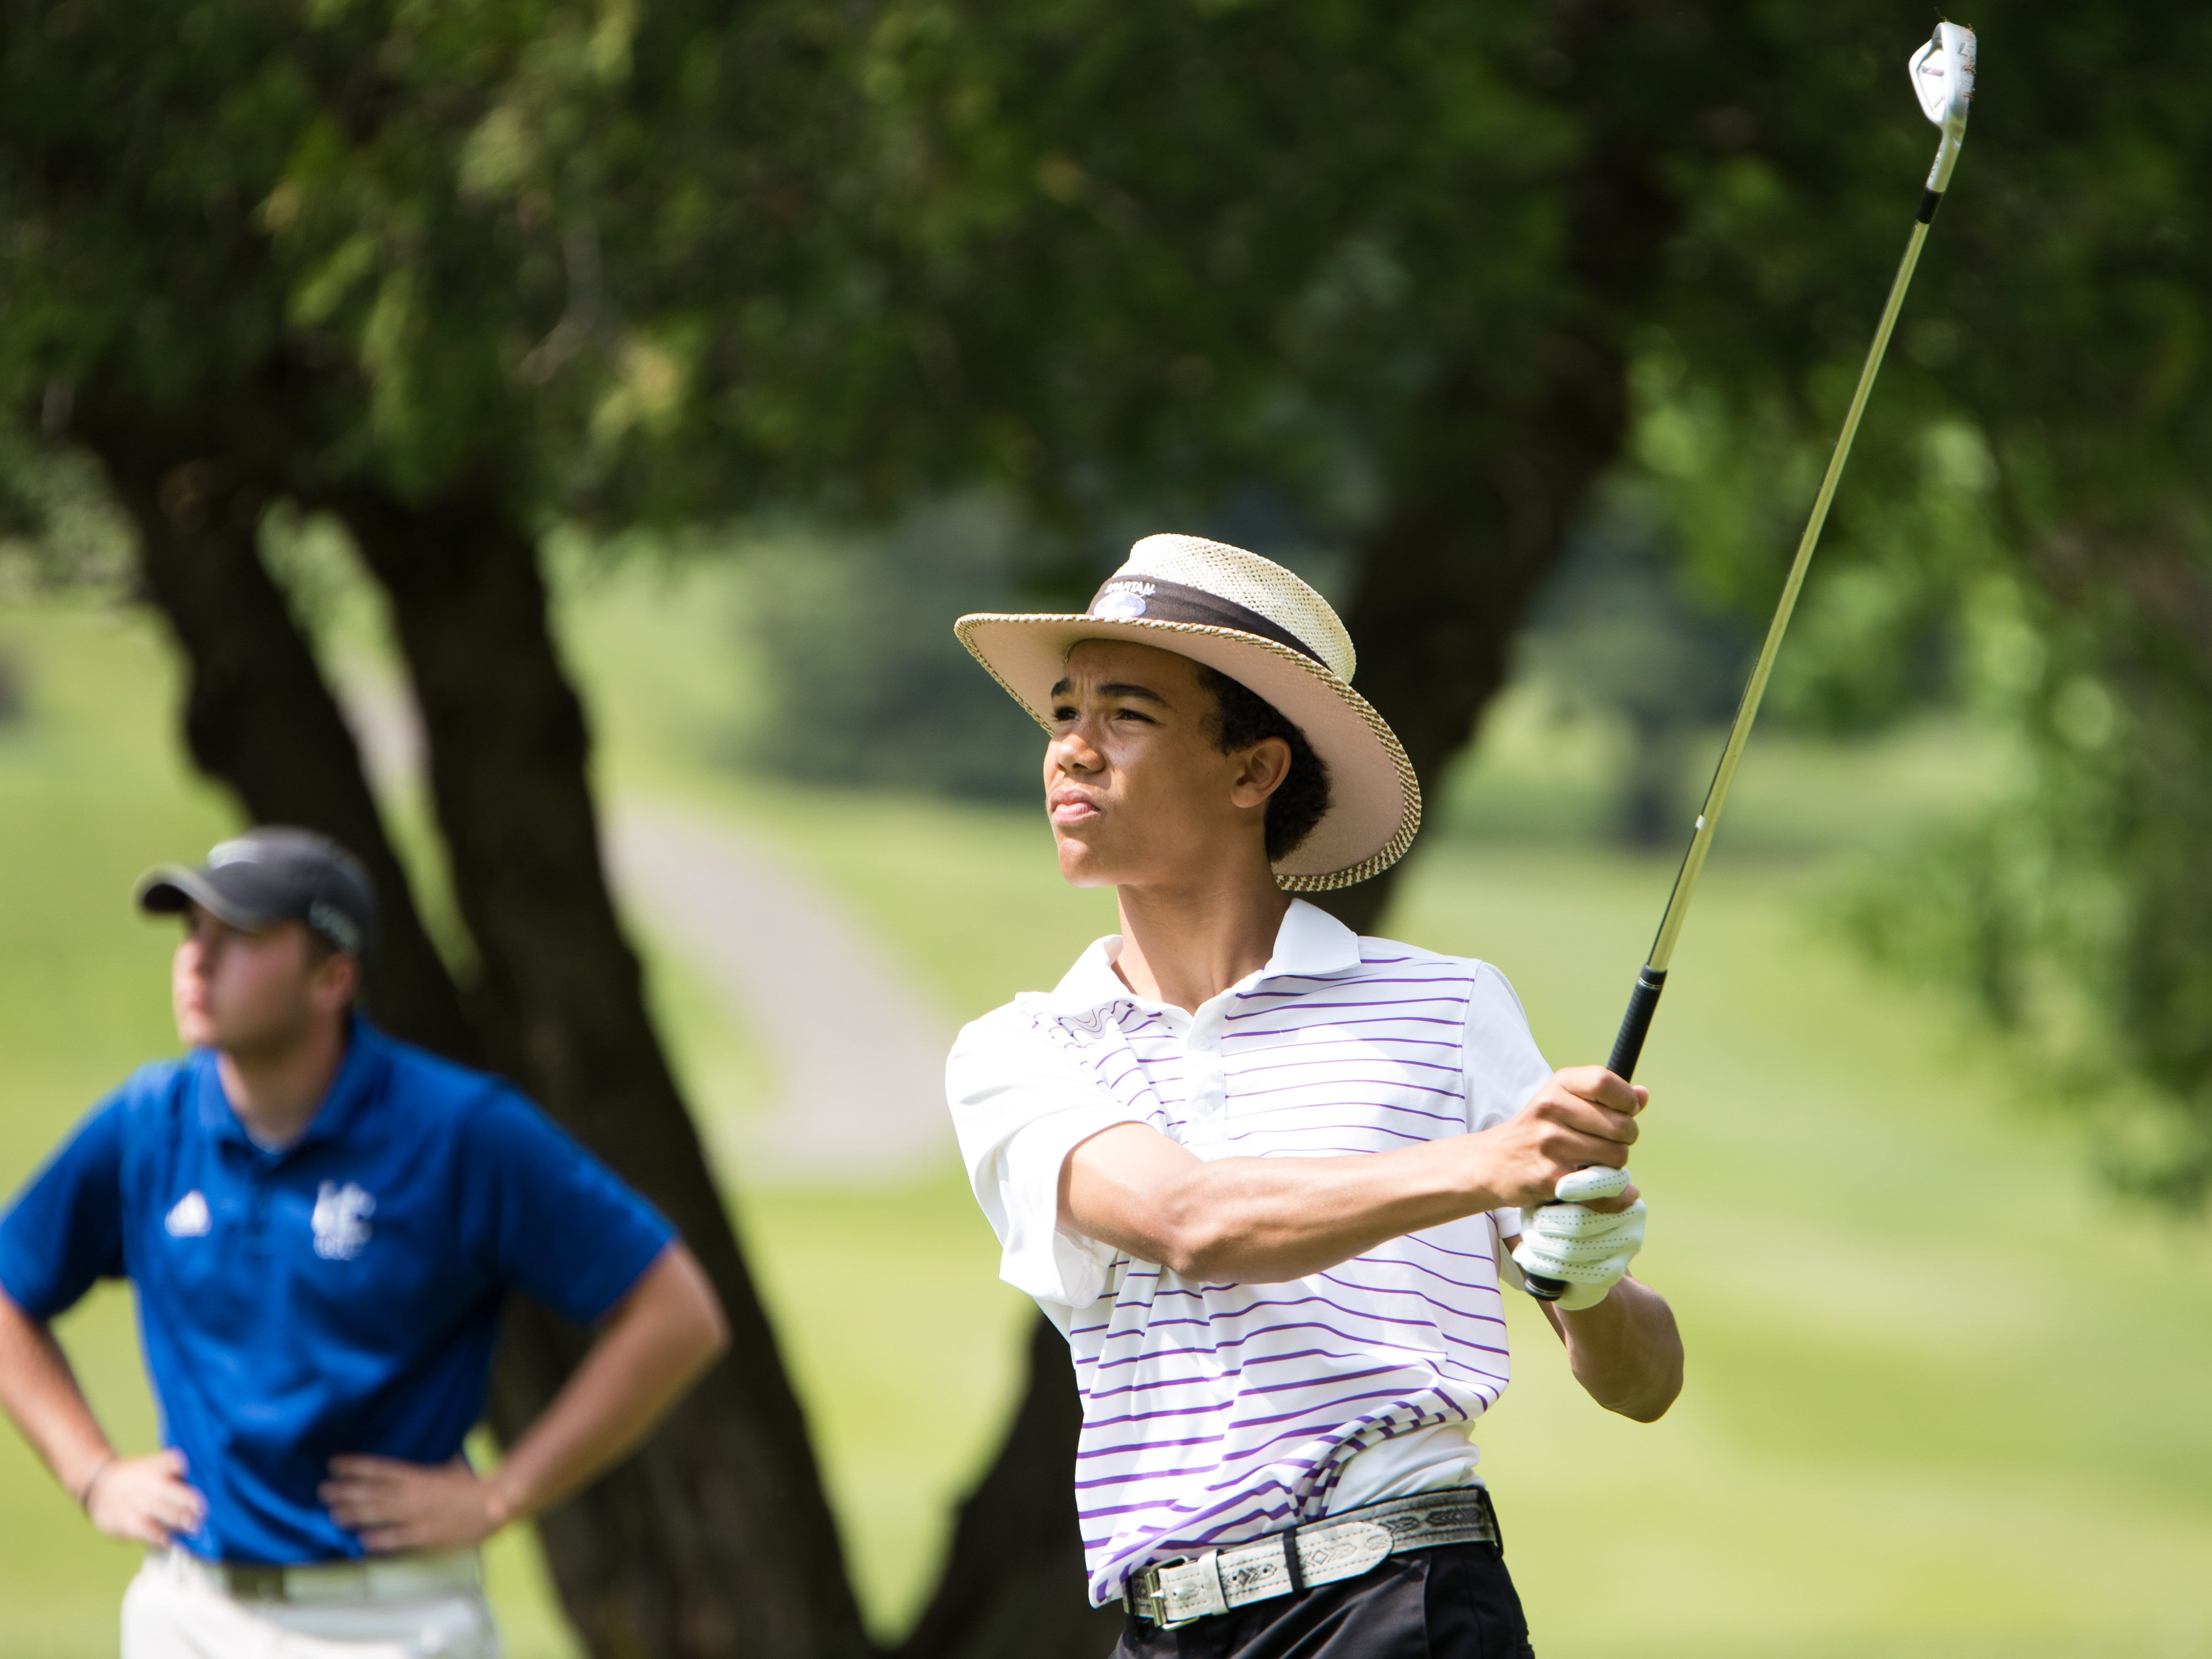 Lakeview's Andrew Walker took first at the All-City golf tournament on Friday at Binder Park Golf Course.